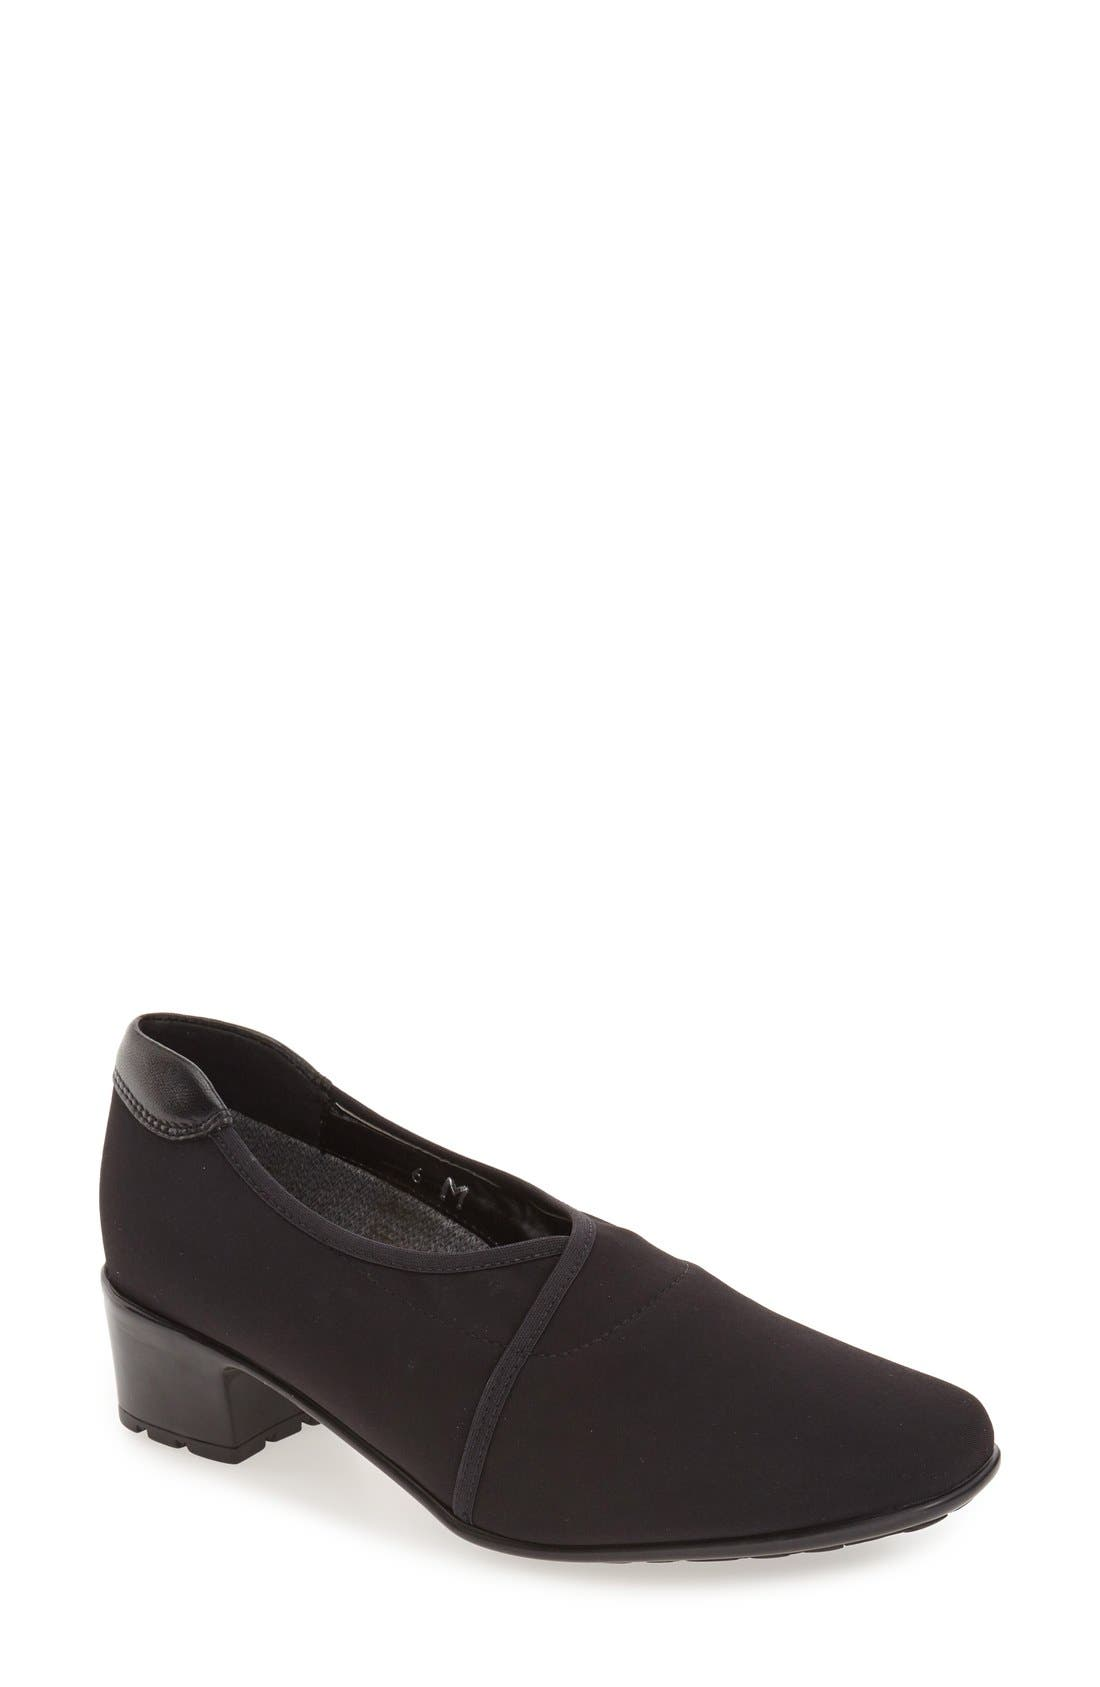 Sesto Meucci 'Yetta' Square Toe Pump (Women)